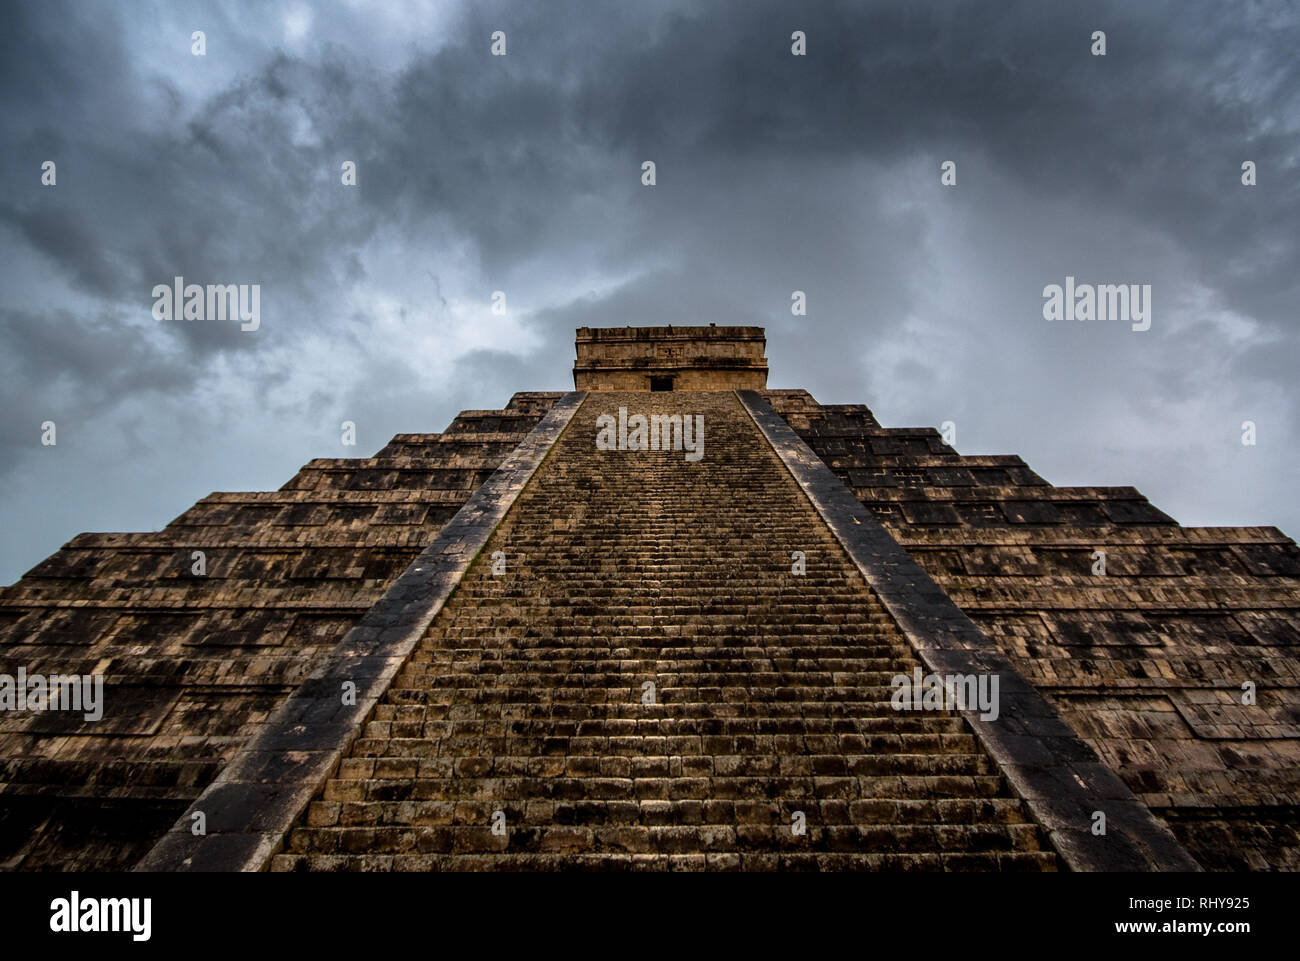 the big pyramide of Kukulcan topped by rain clouds - Stock Image